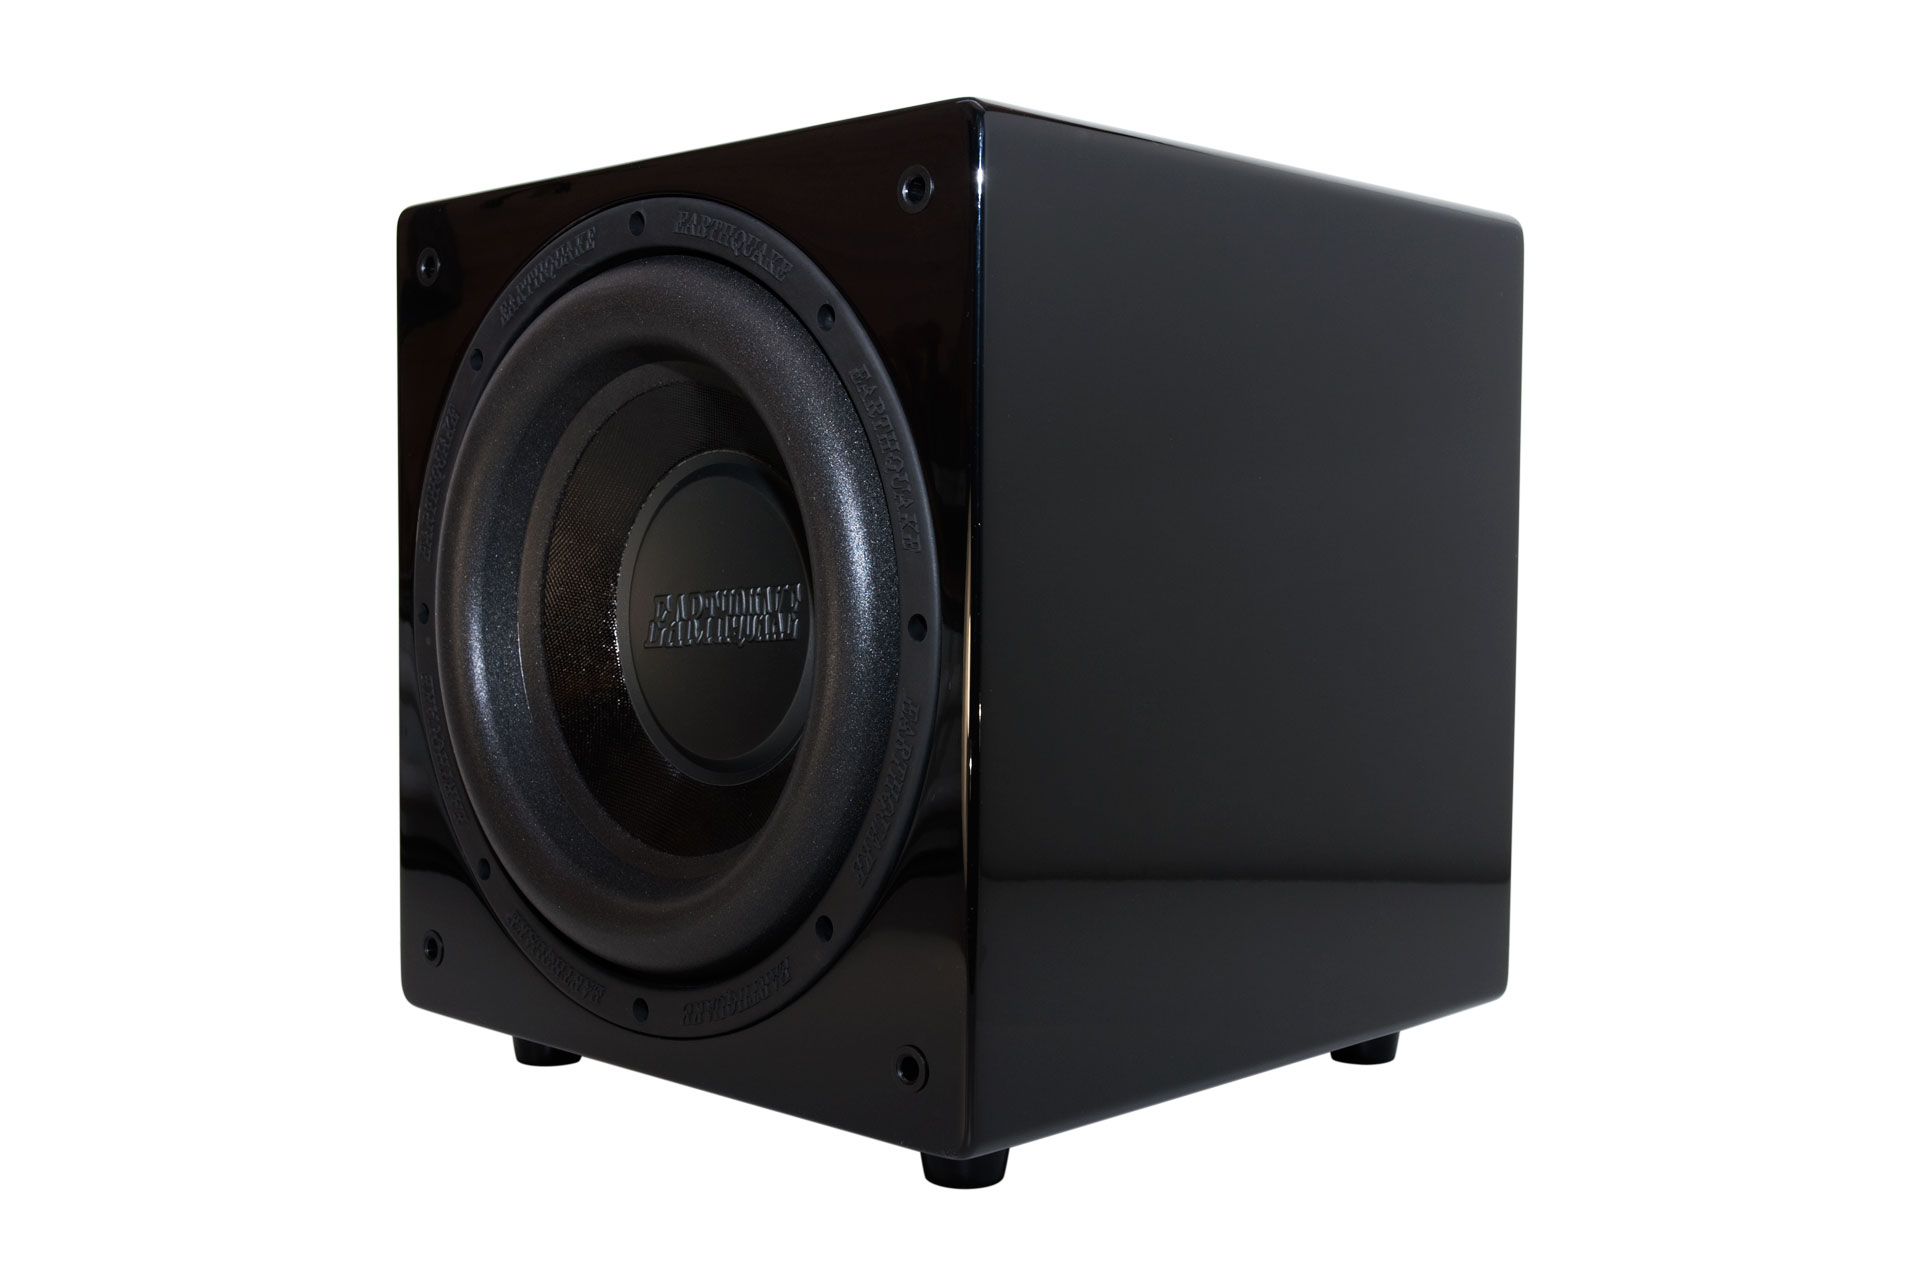 Earthquake MINIME-P12 Subwoofer